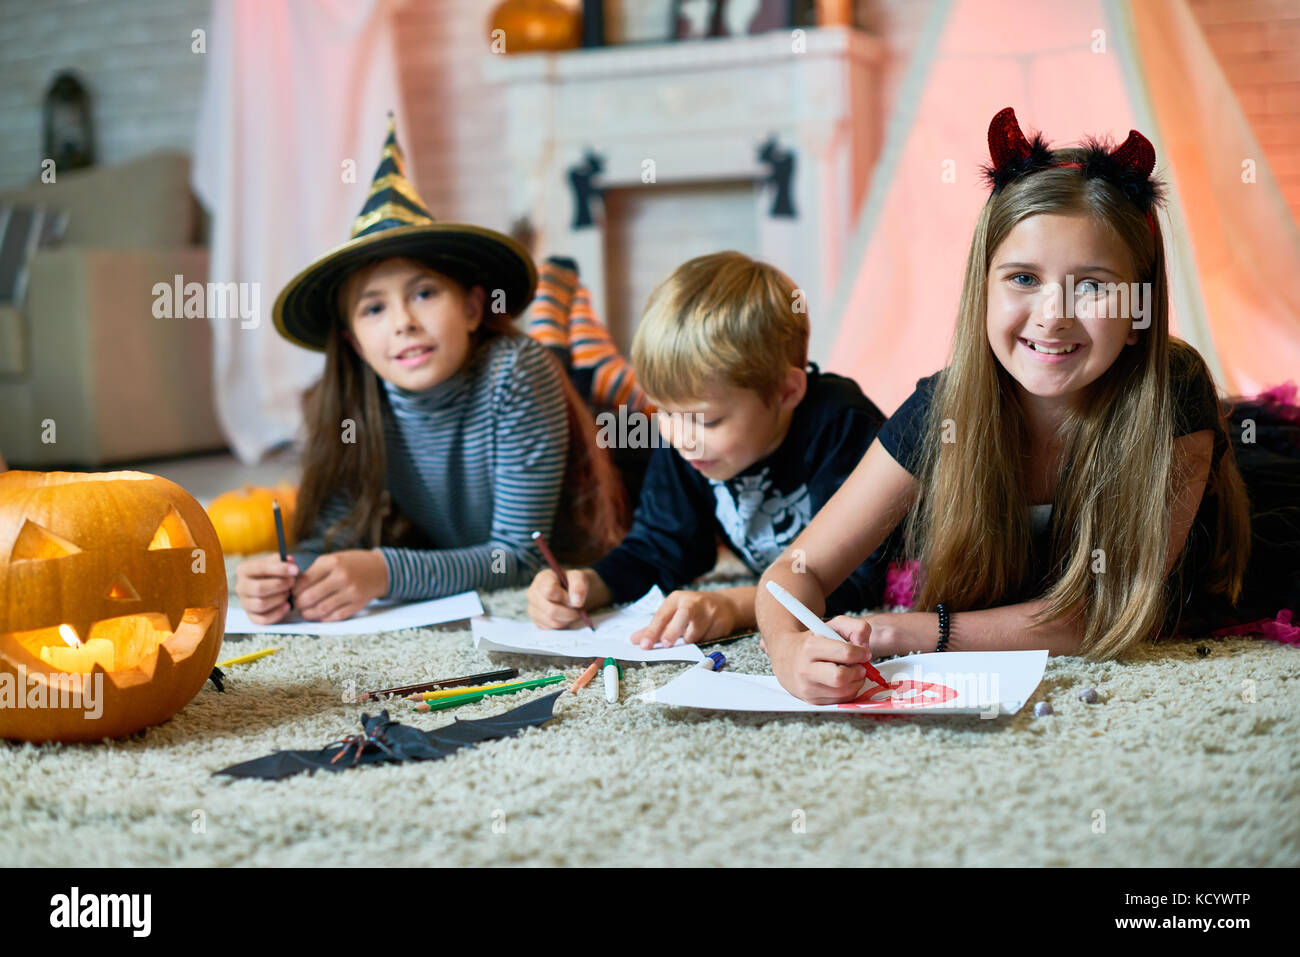 Group portrait of cheerful children wearing Halloween costumes gathered together at cozy living room decorated for - Stock Image